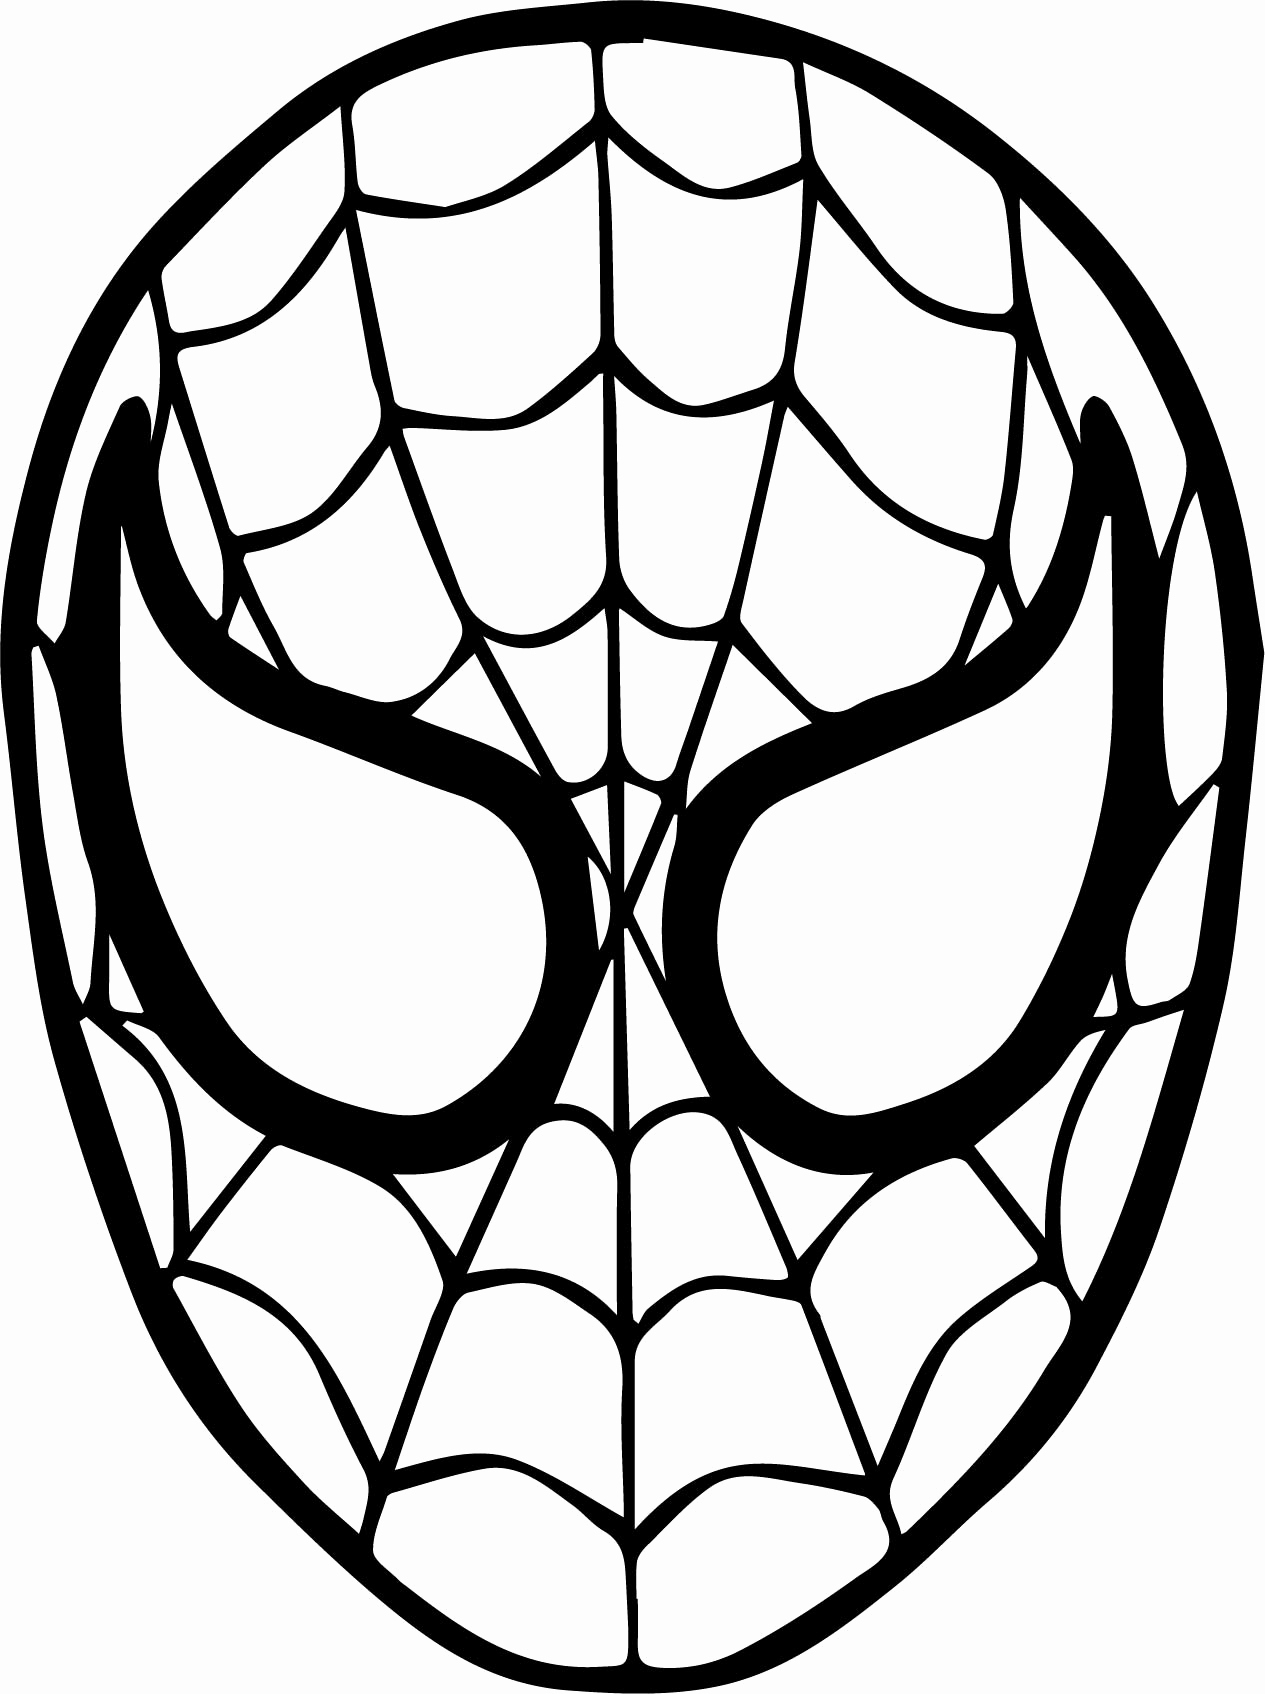 spiderman mask coloring spiderman drawing pages at paintingvalleycom explore mask coloring spiderman